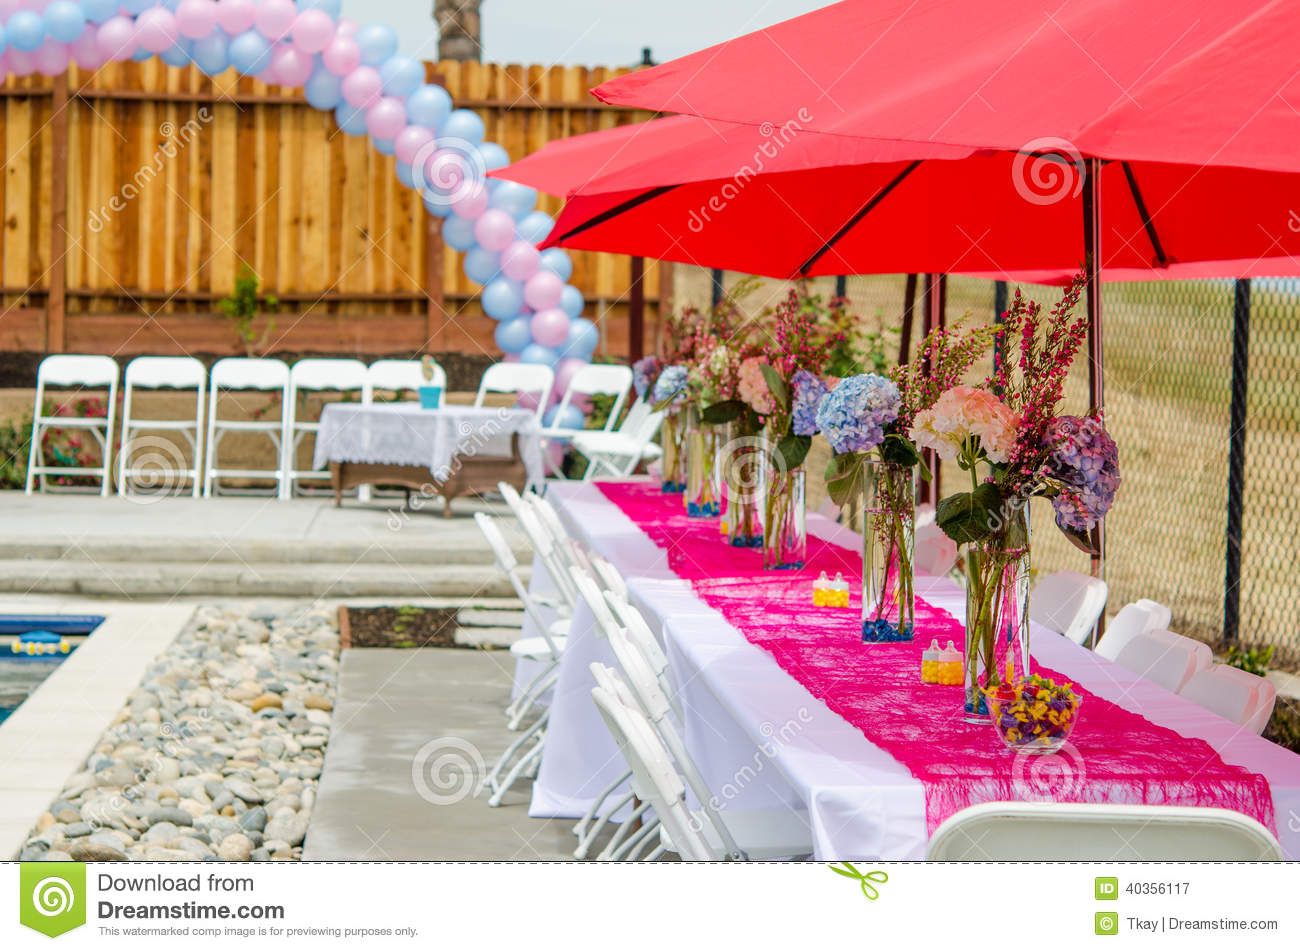 Baby Shower Table Decorations Stock Photo - Image: 40356117